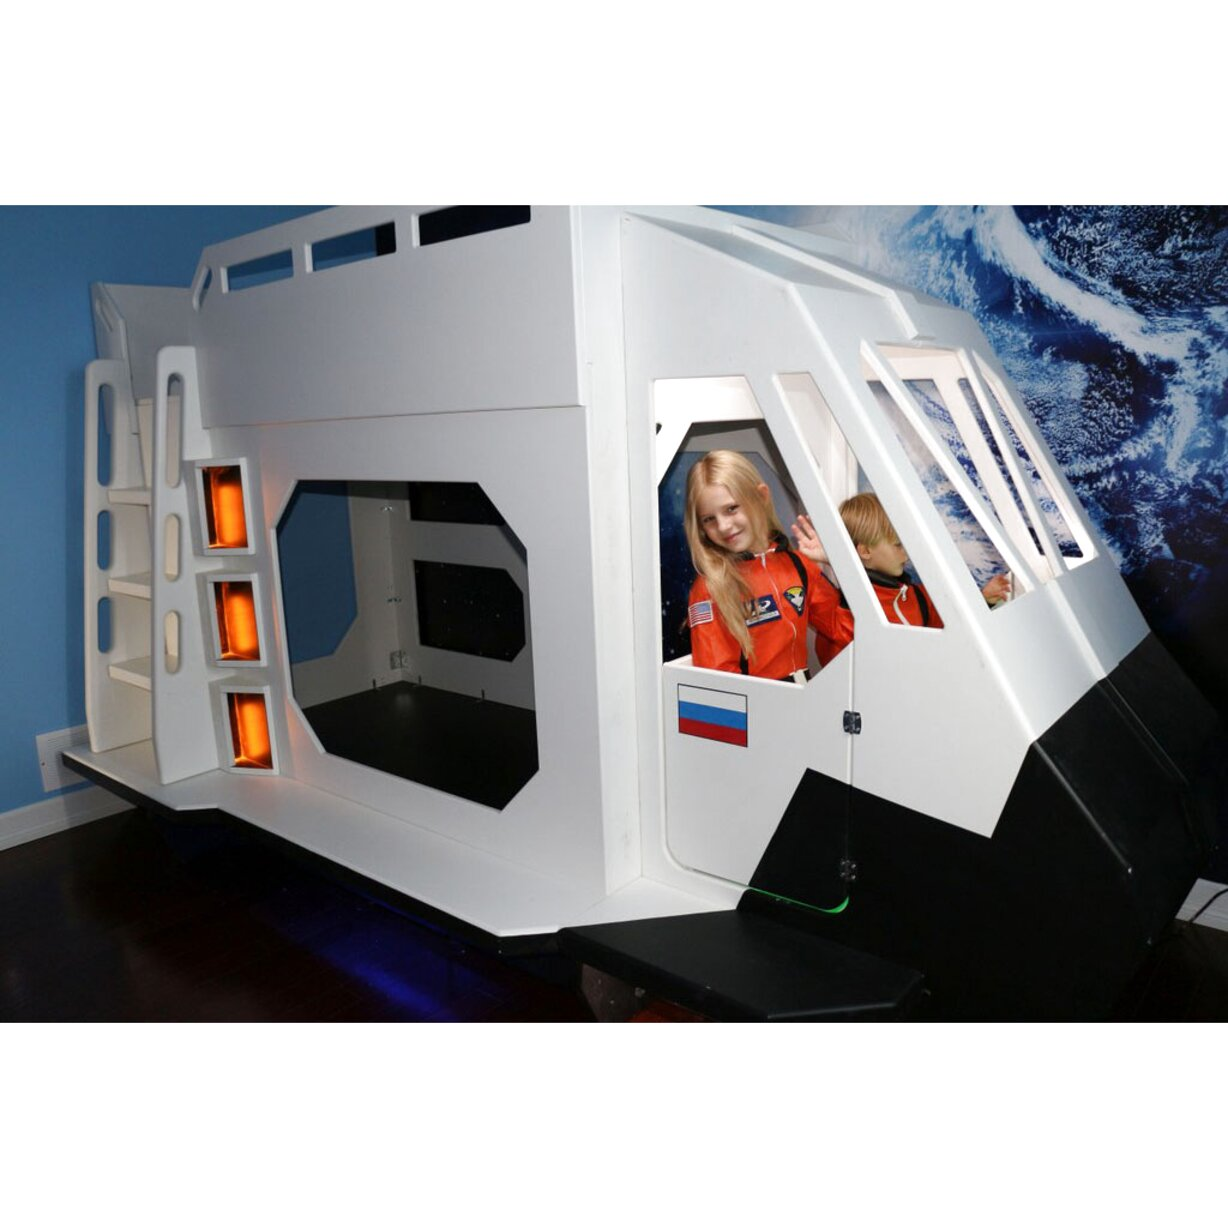 Spaceship Bed For Sale In Uk 57 Used Spaceship Beds